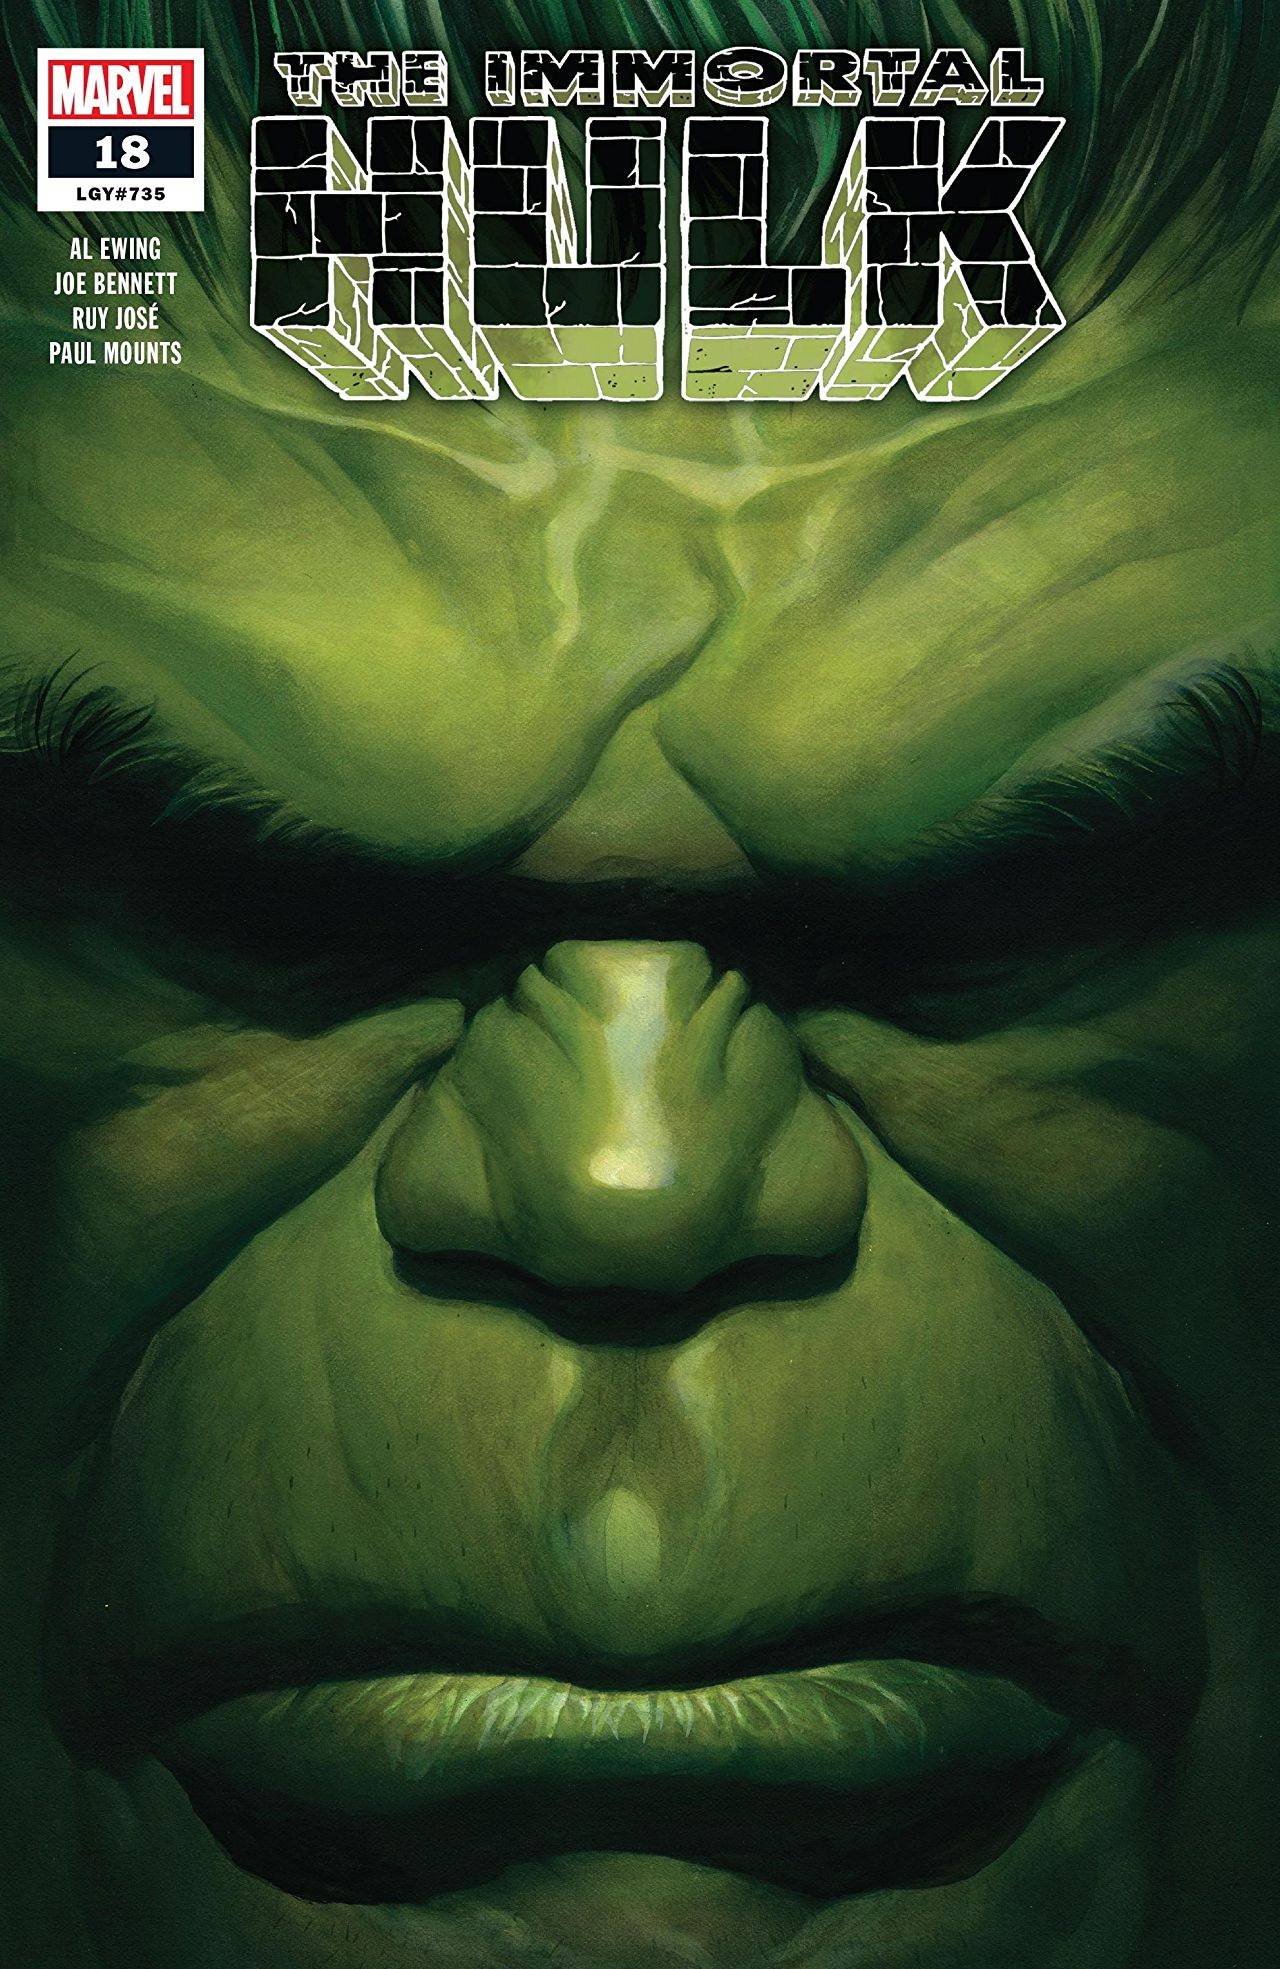 Marvel Preview: Immortal Hulk #18